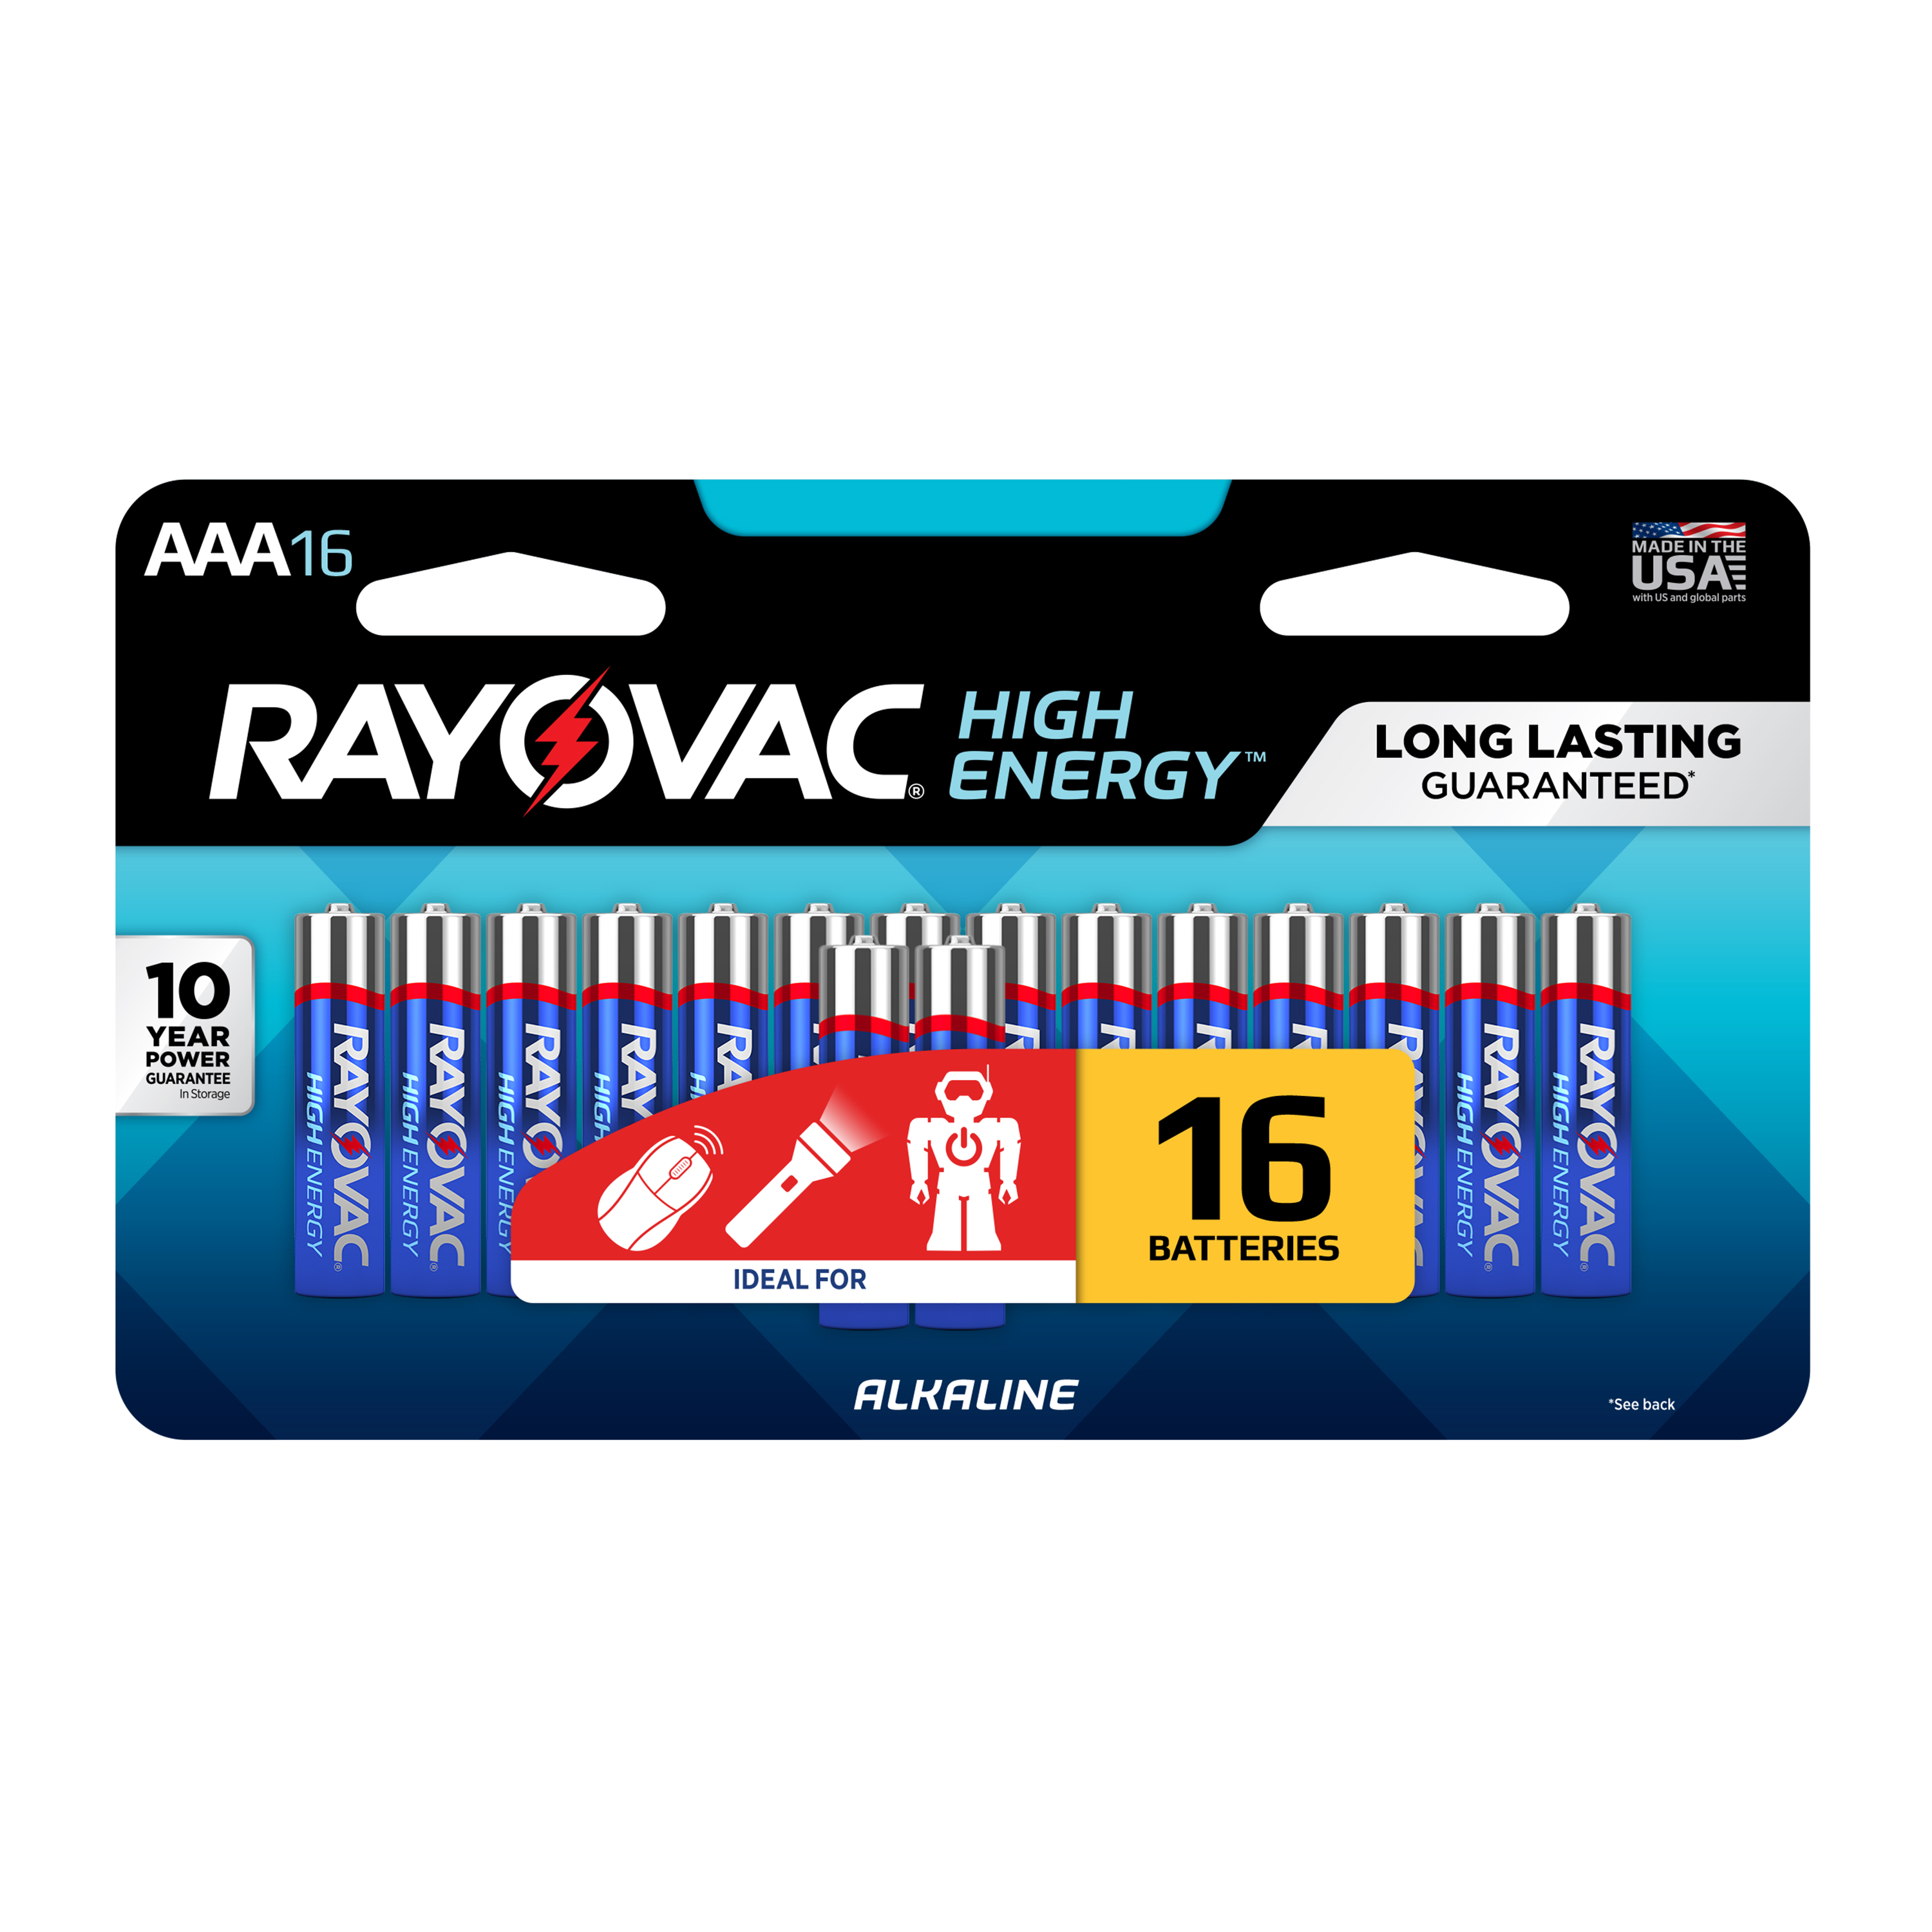 Rayovac High Energy Alkaline AAA Batteries, 16 Count